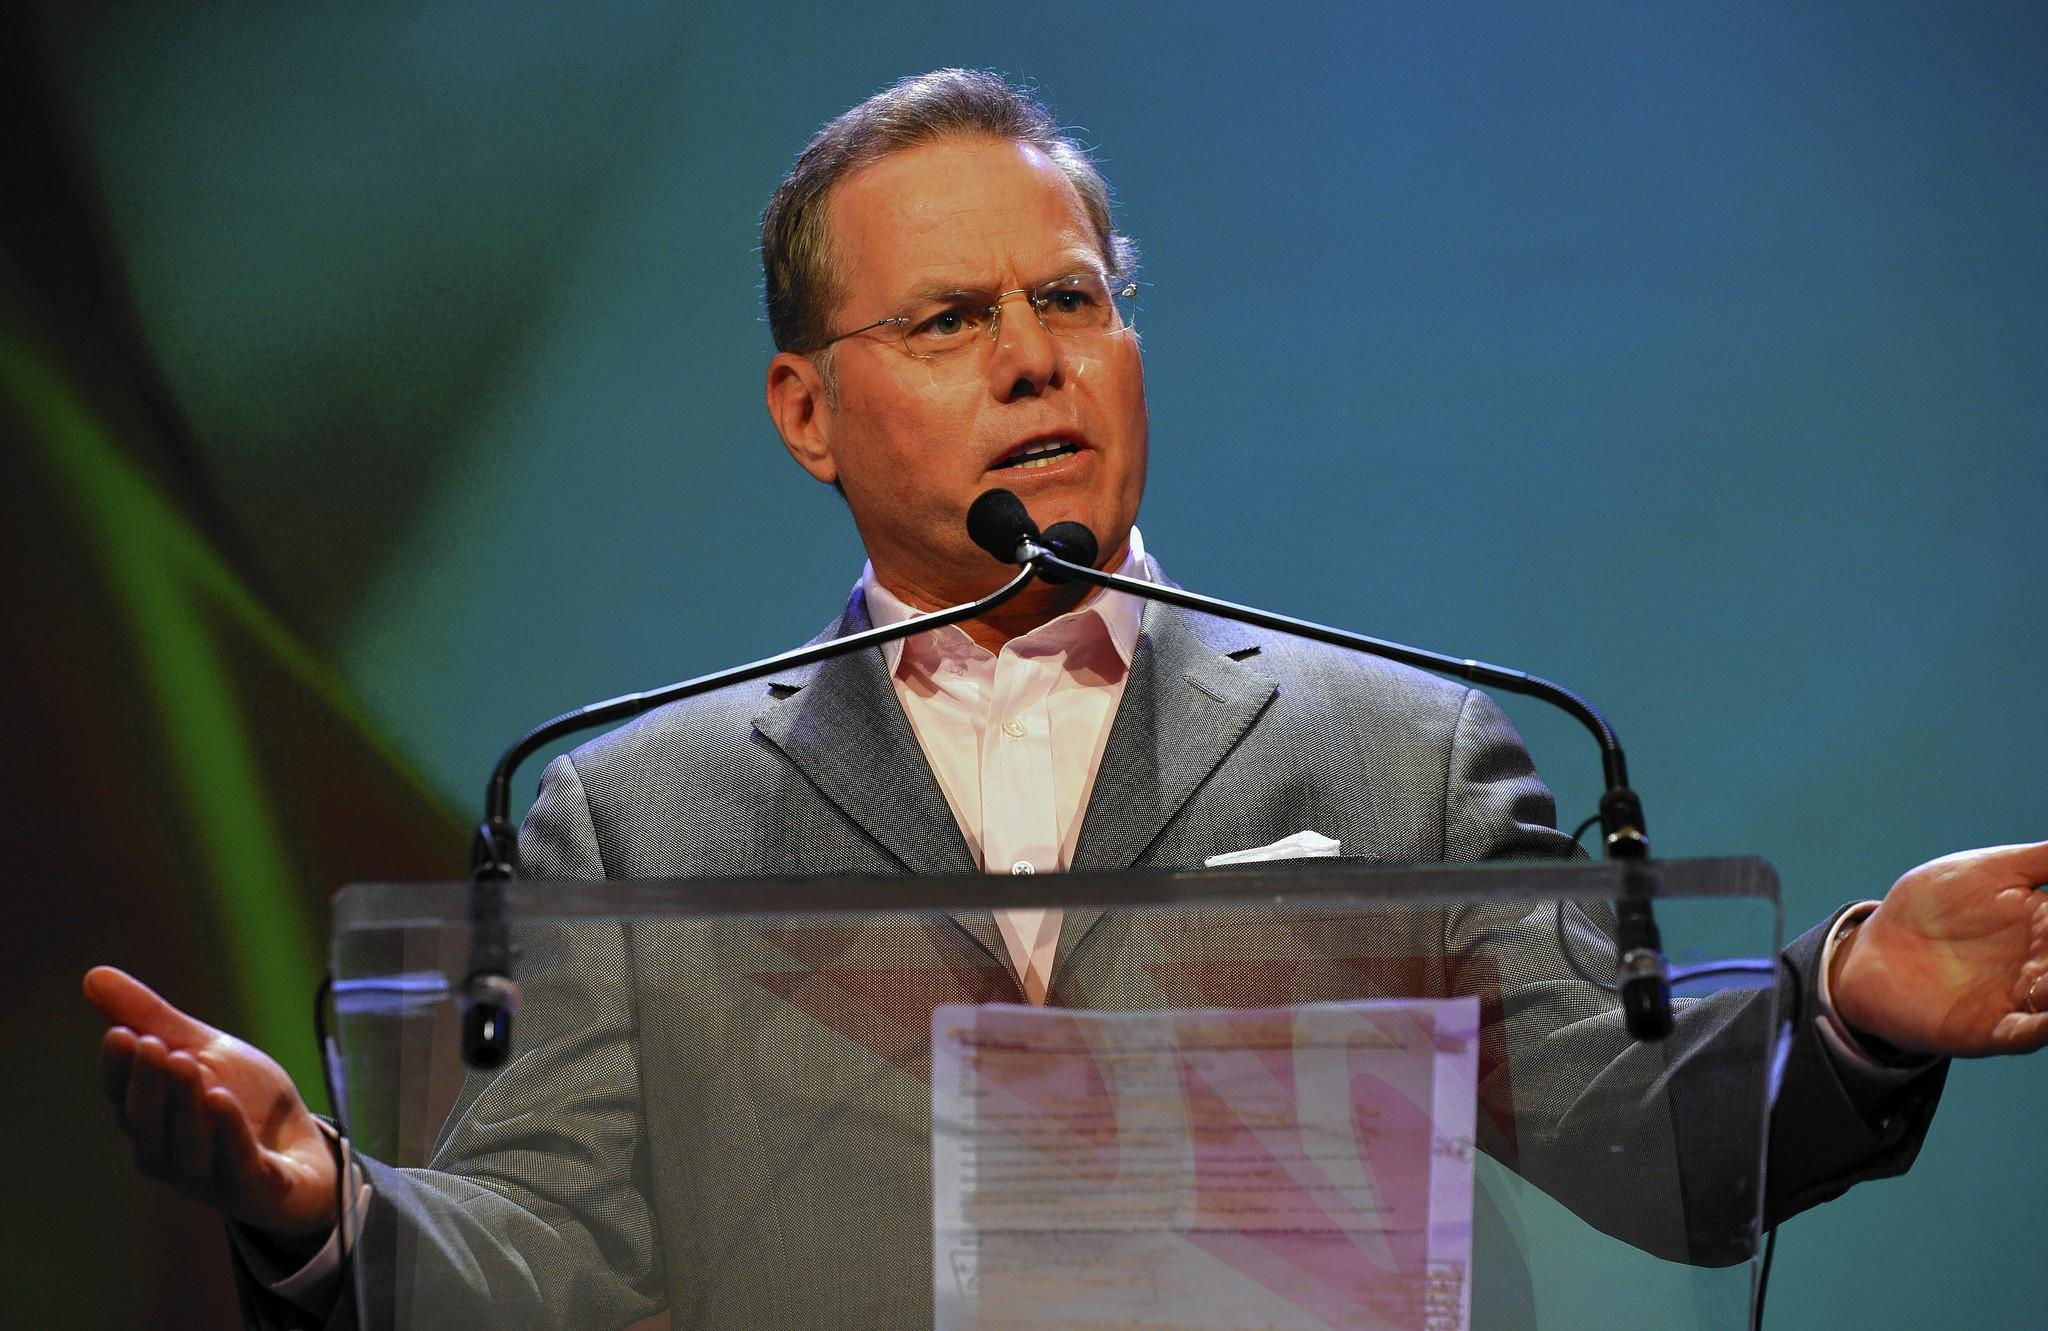 Discovery Communications Chief Executive David Zaslav will continue to collect one of the most lucrative executive compensation packages in corporate America.